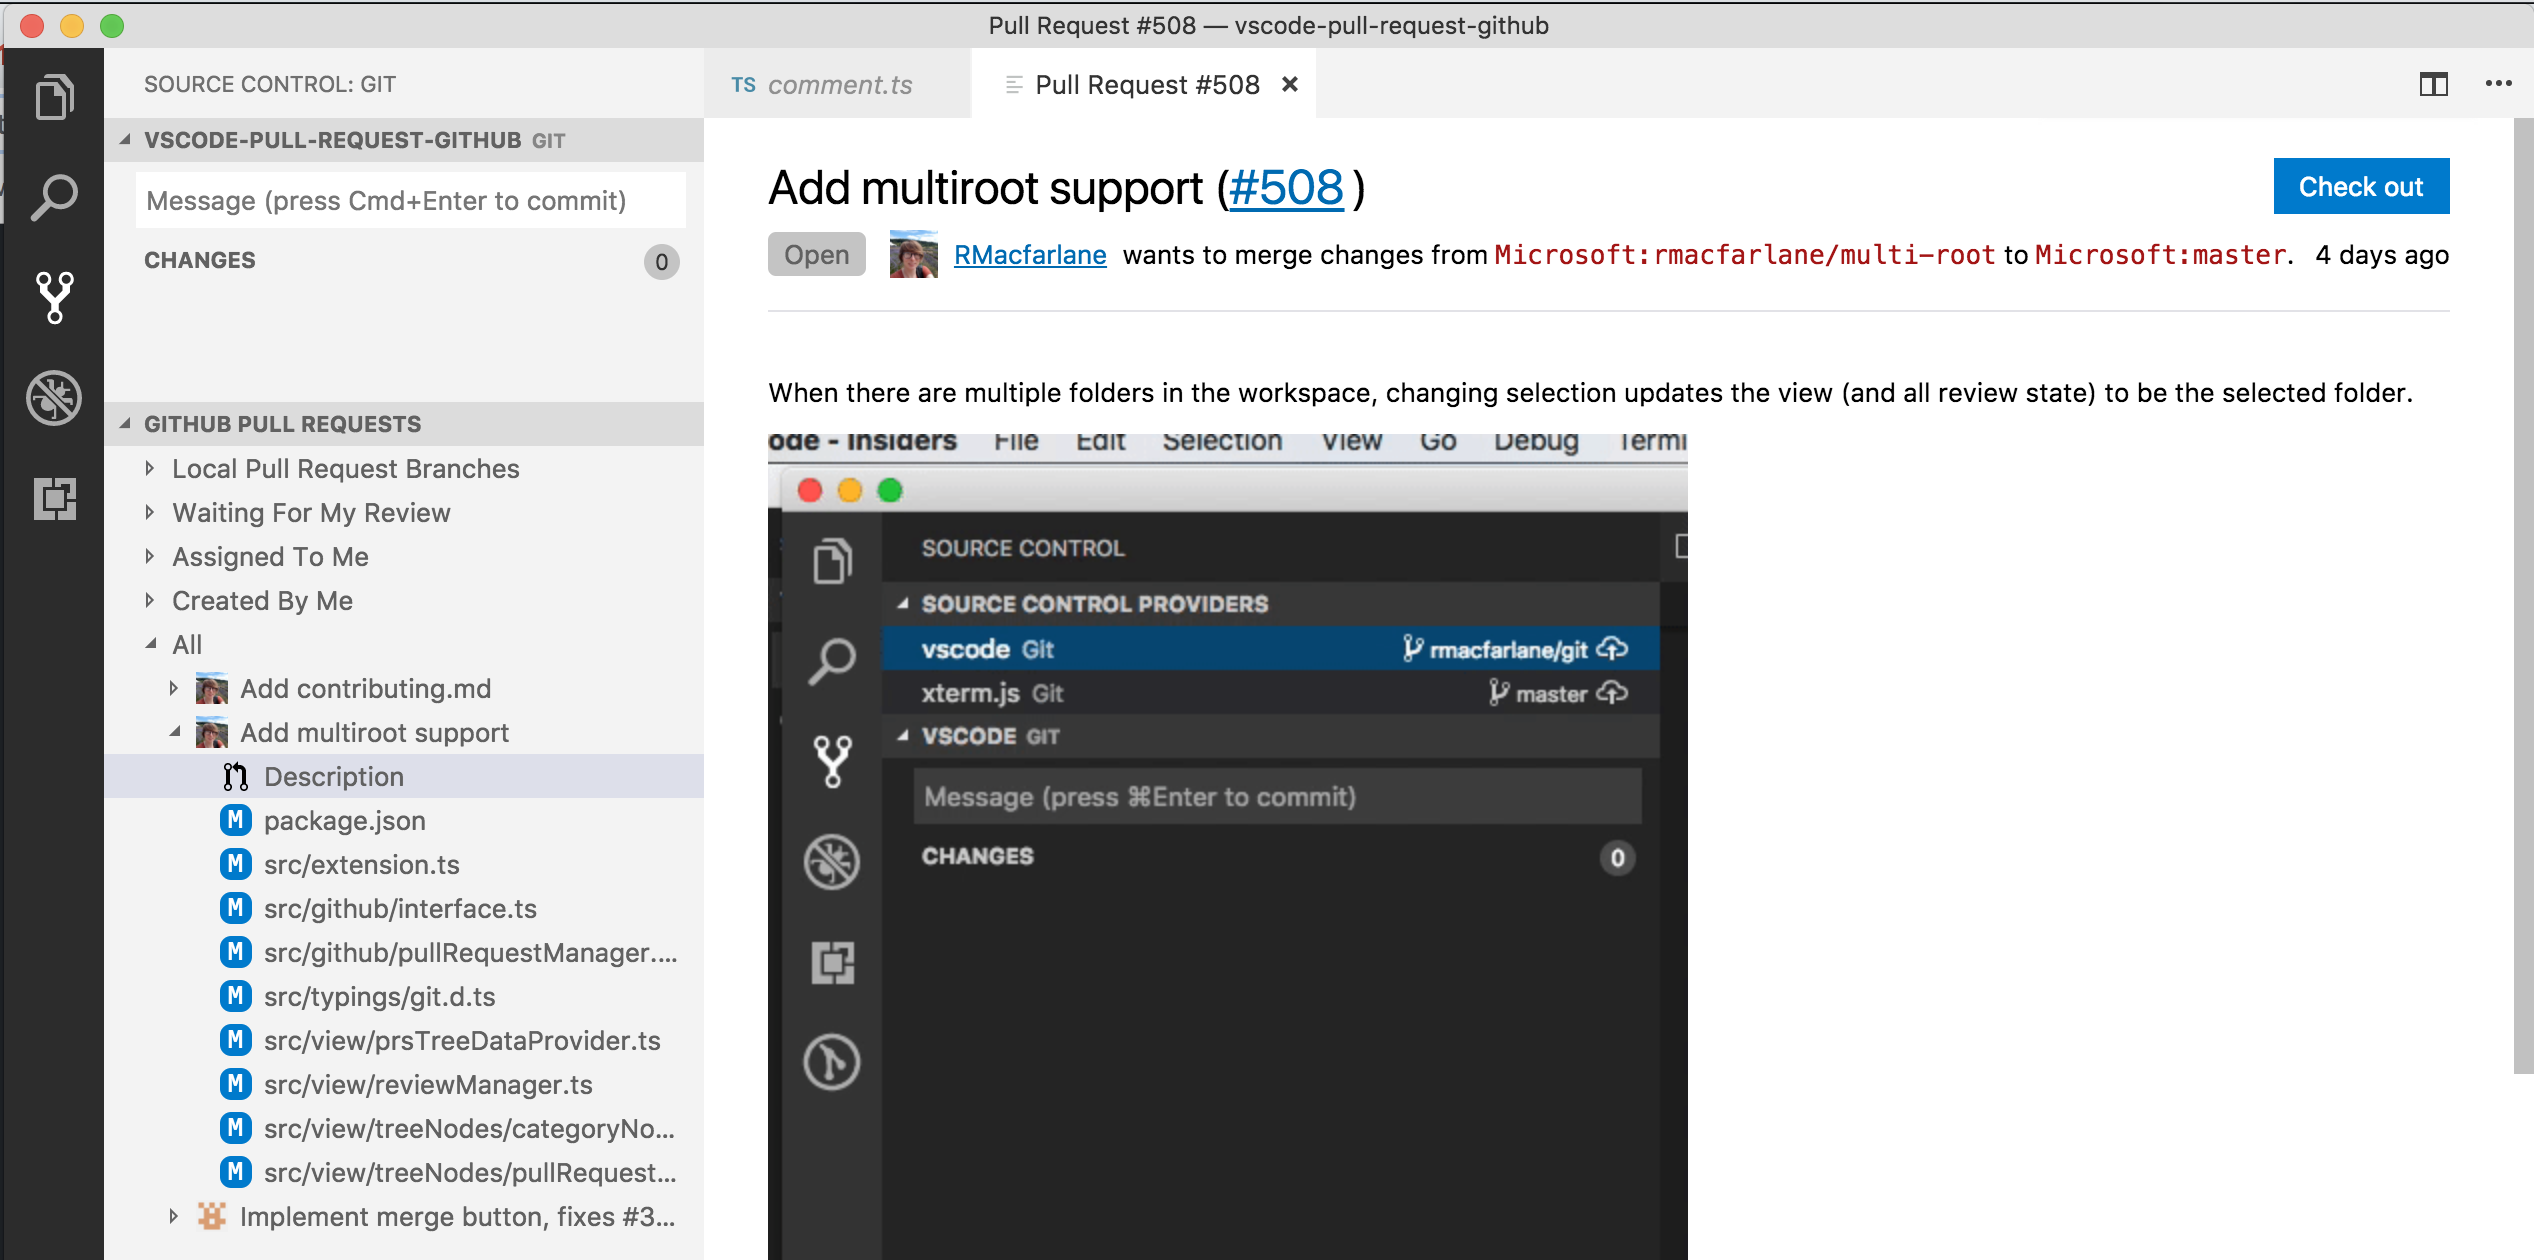 The pull request experience in Visual Studio Code